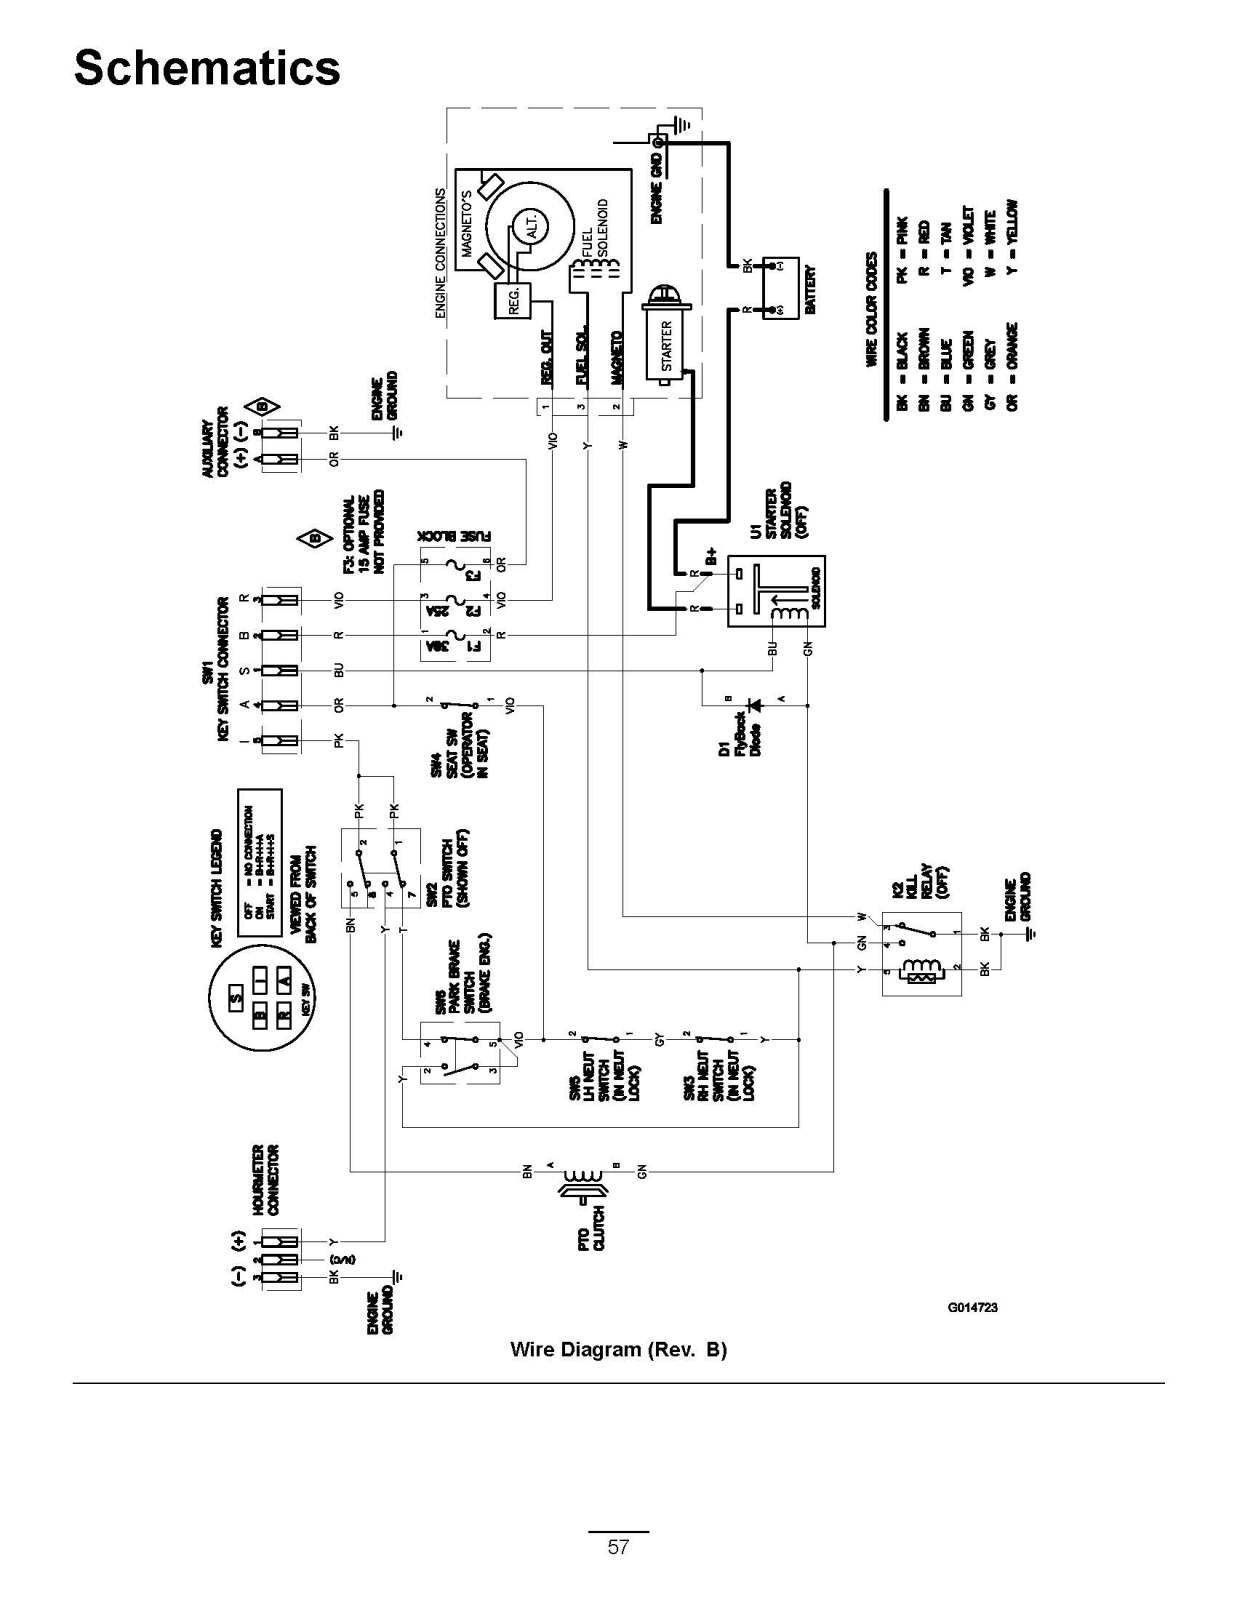 New Wiring Diagram Fender 5 Way Switch